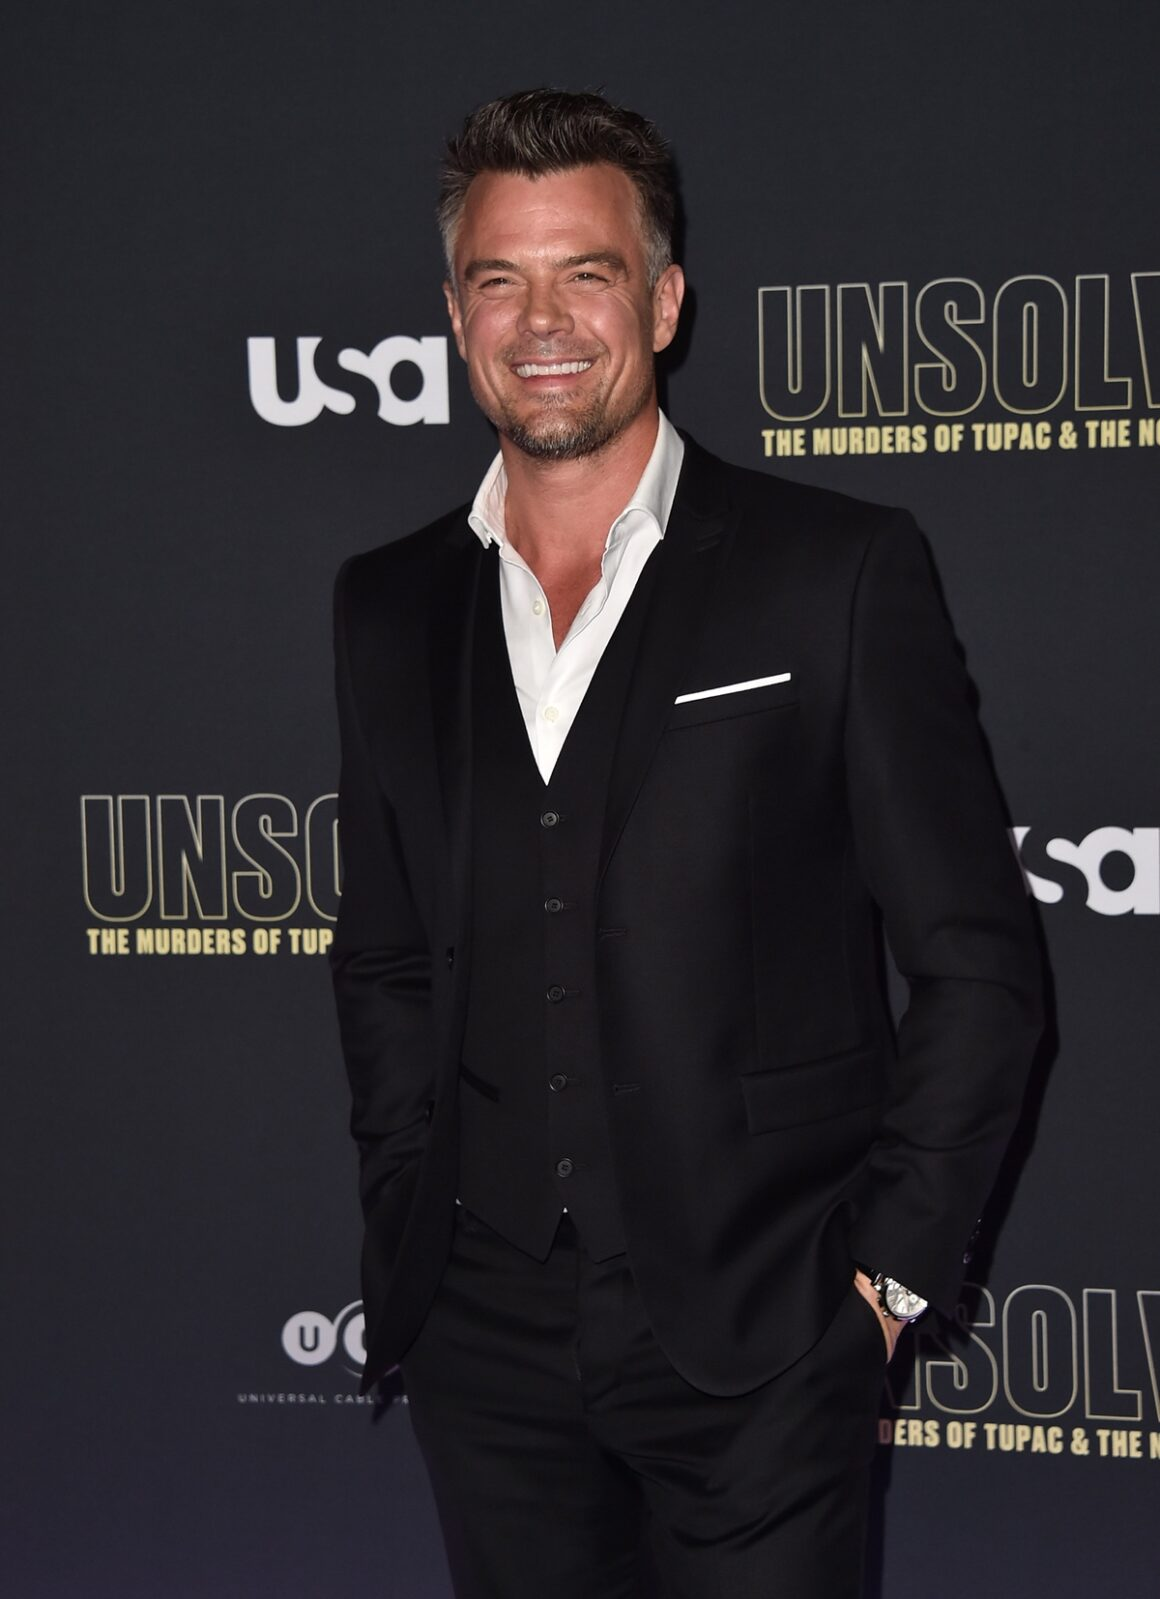 """Josh Duhamel Premiere Of USA Network's """"Unsolved: The Murders Of Tupac And The Notorious B.I.G."""" - Arrivals"""